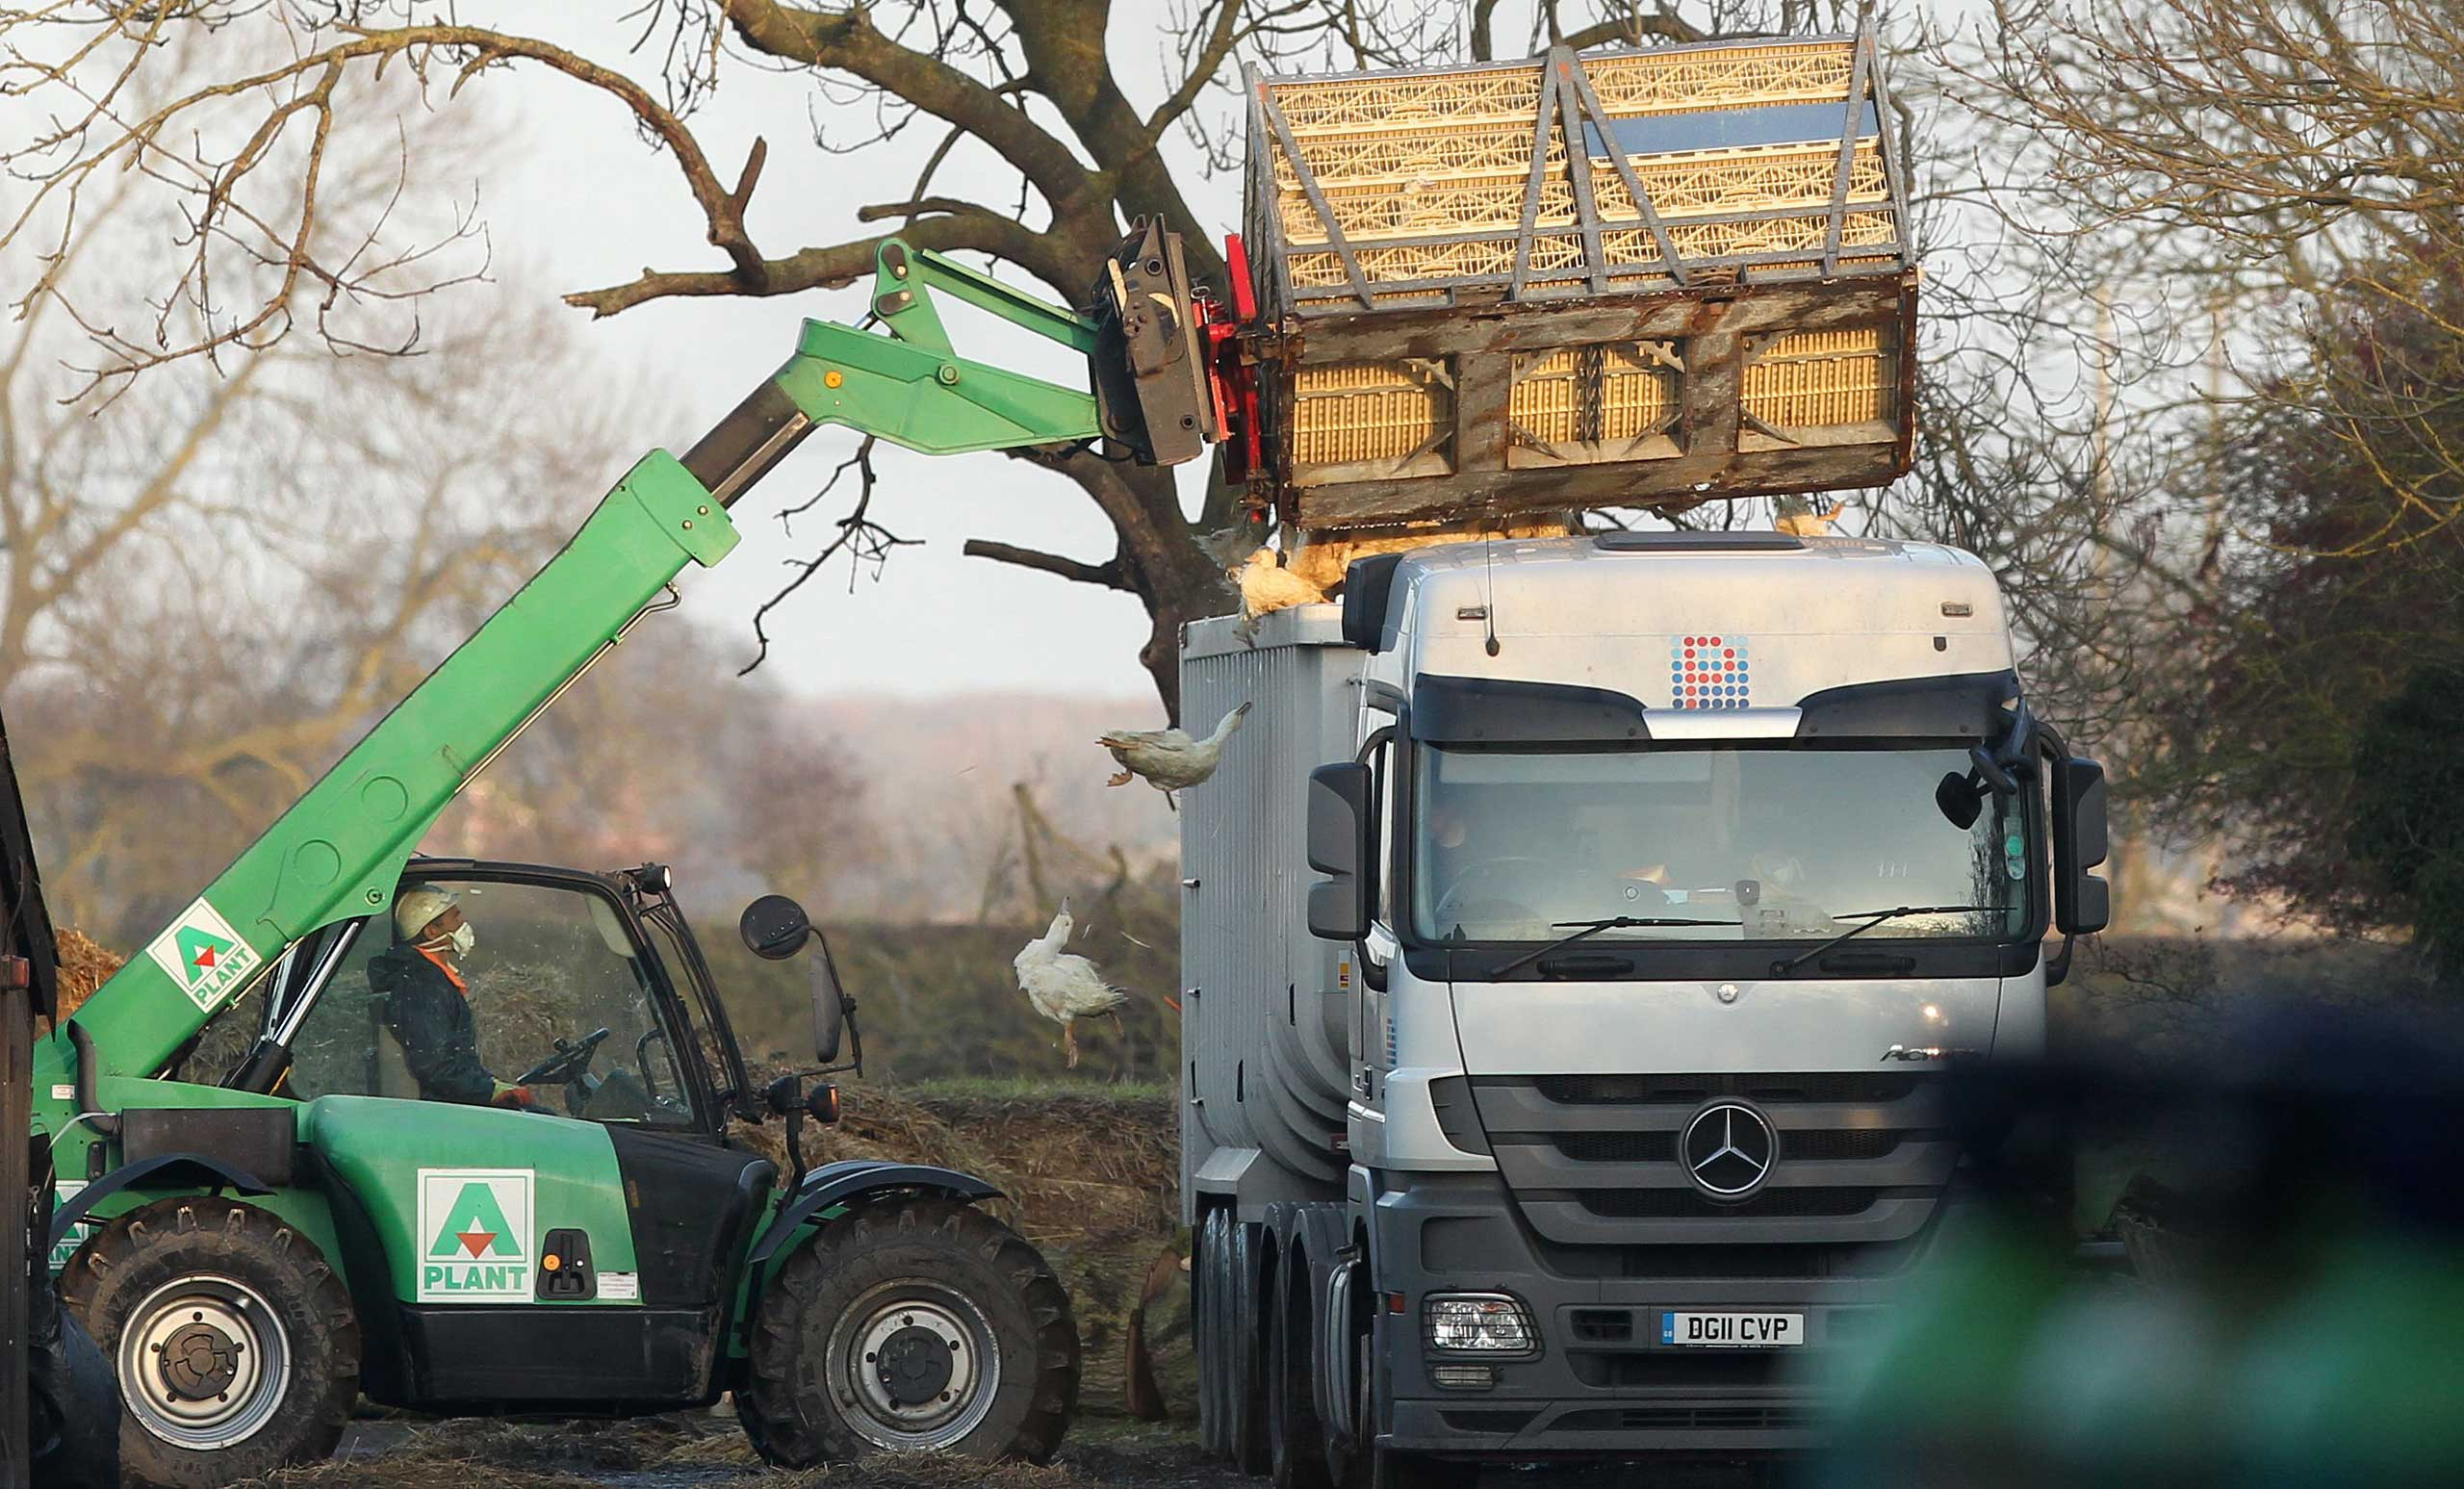 Nov. 18, 2014. Ducks are loaded onto a lorry following a cull at a farm in Nafferton, East Yorkshire, after a bird flu outbreak. Government veterinarians are investigating if the case of the highly pathogenic H5 avian flu found on the farm near Driffield is linked to a similar case in the Netherlands.